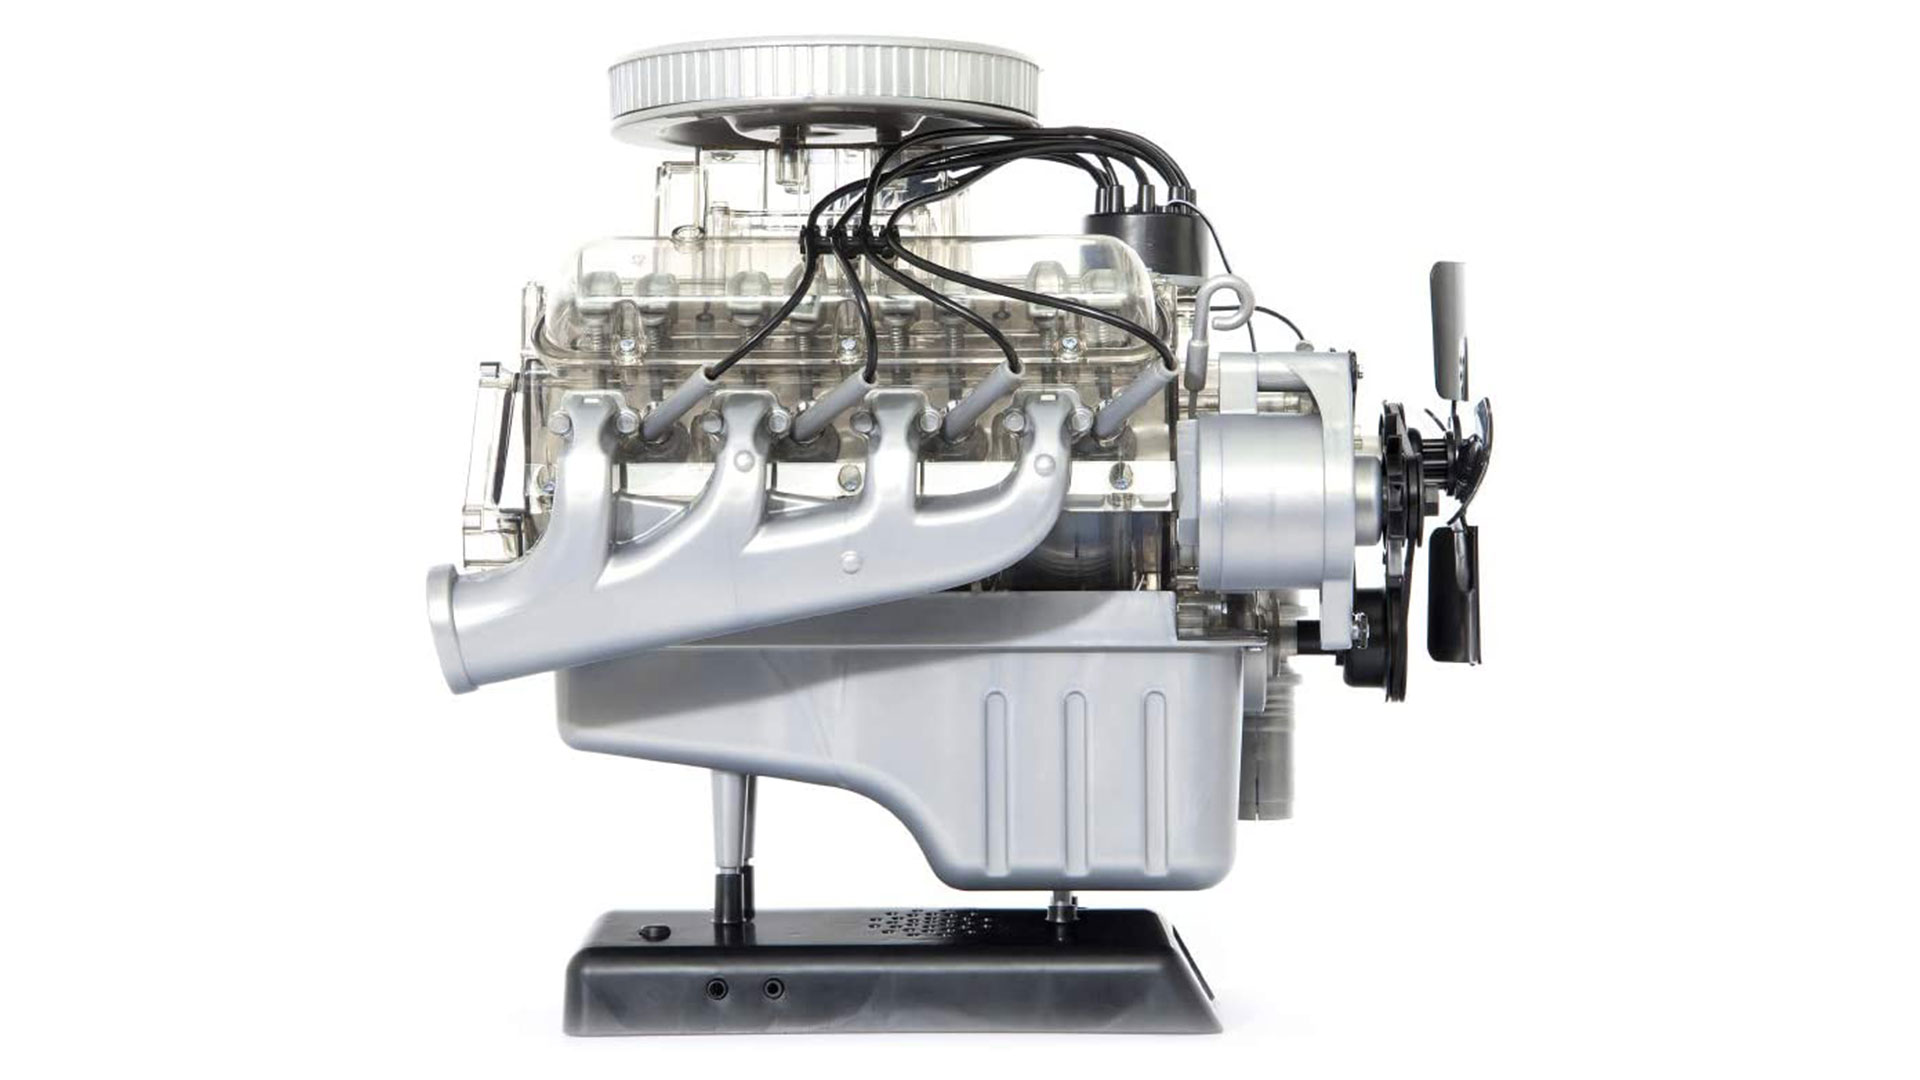 franzis ford mustang v8 model engine